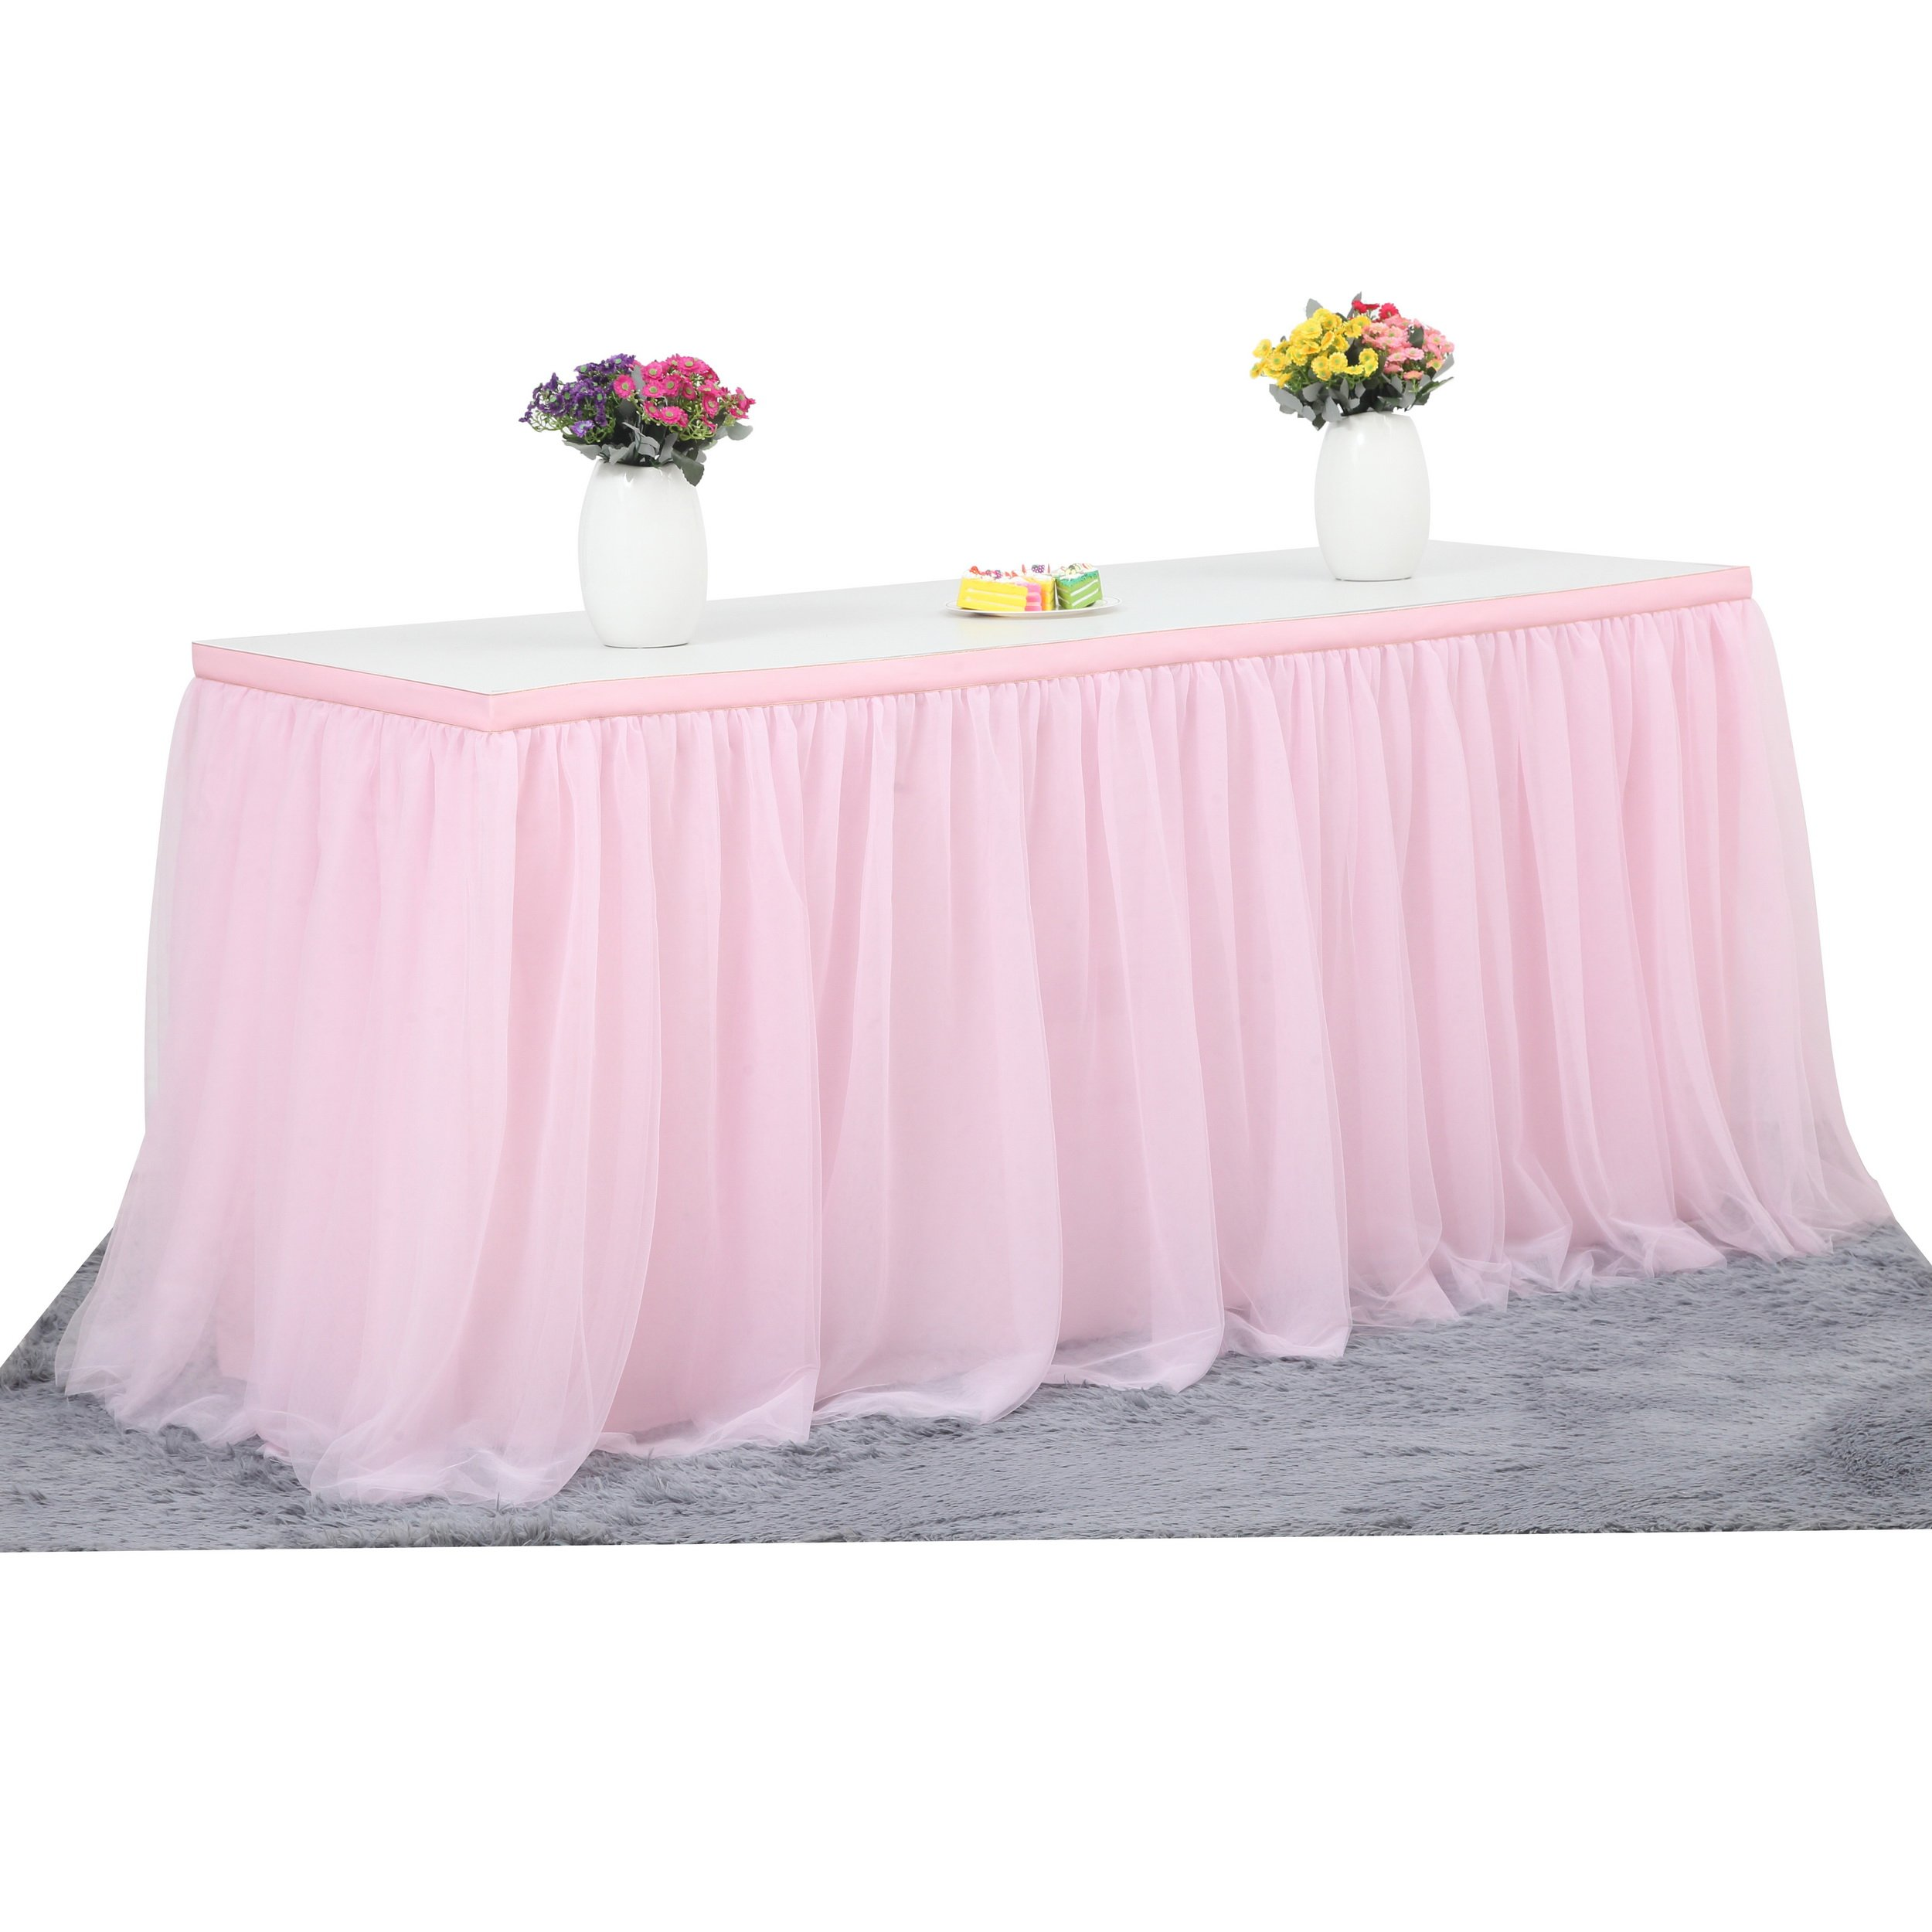 Suppromo 2 Yards High-end Gold Brim 3 Layer Mesh Fluffy Tutu Table Skirt Tulle Tableware For Party,Wedding,Birthday Party&Home Decoration (L6(ft) H 30in, Pink)